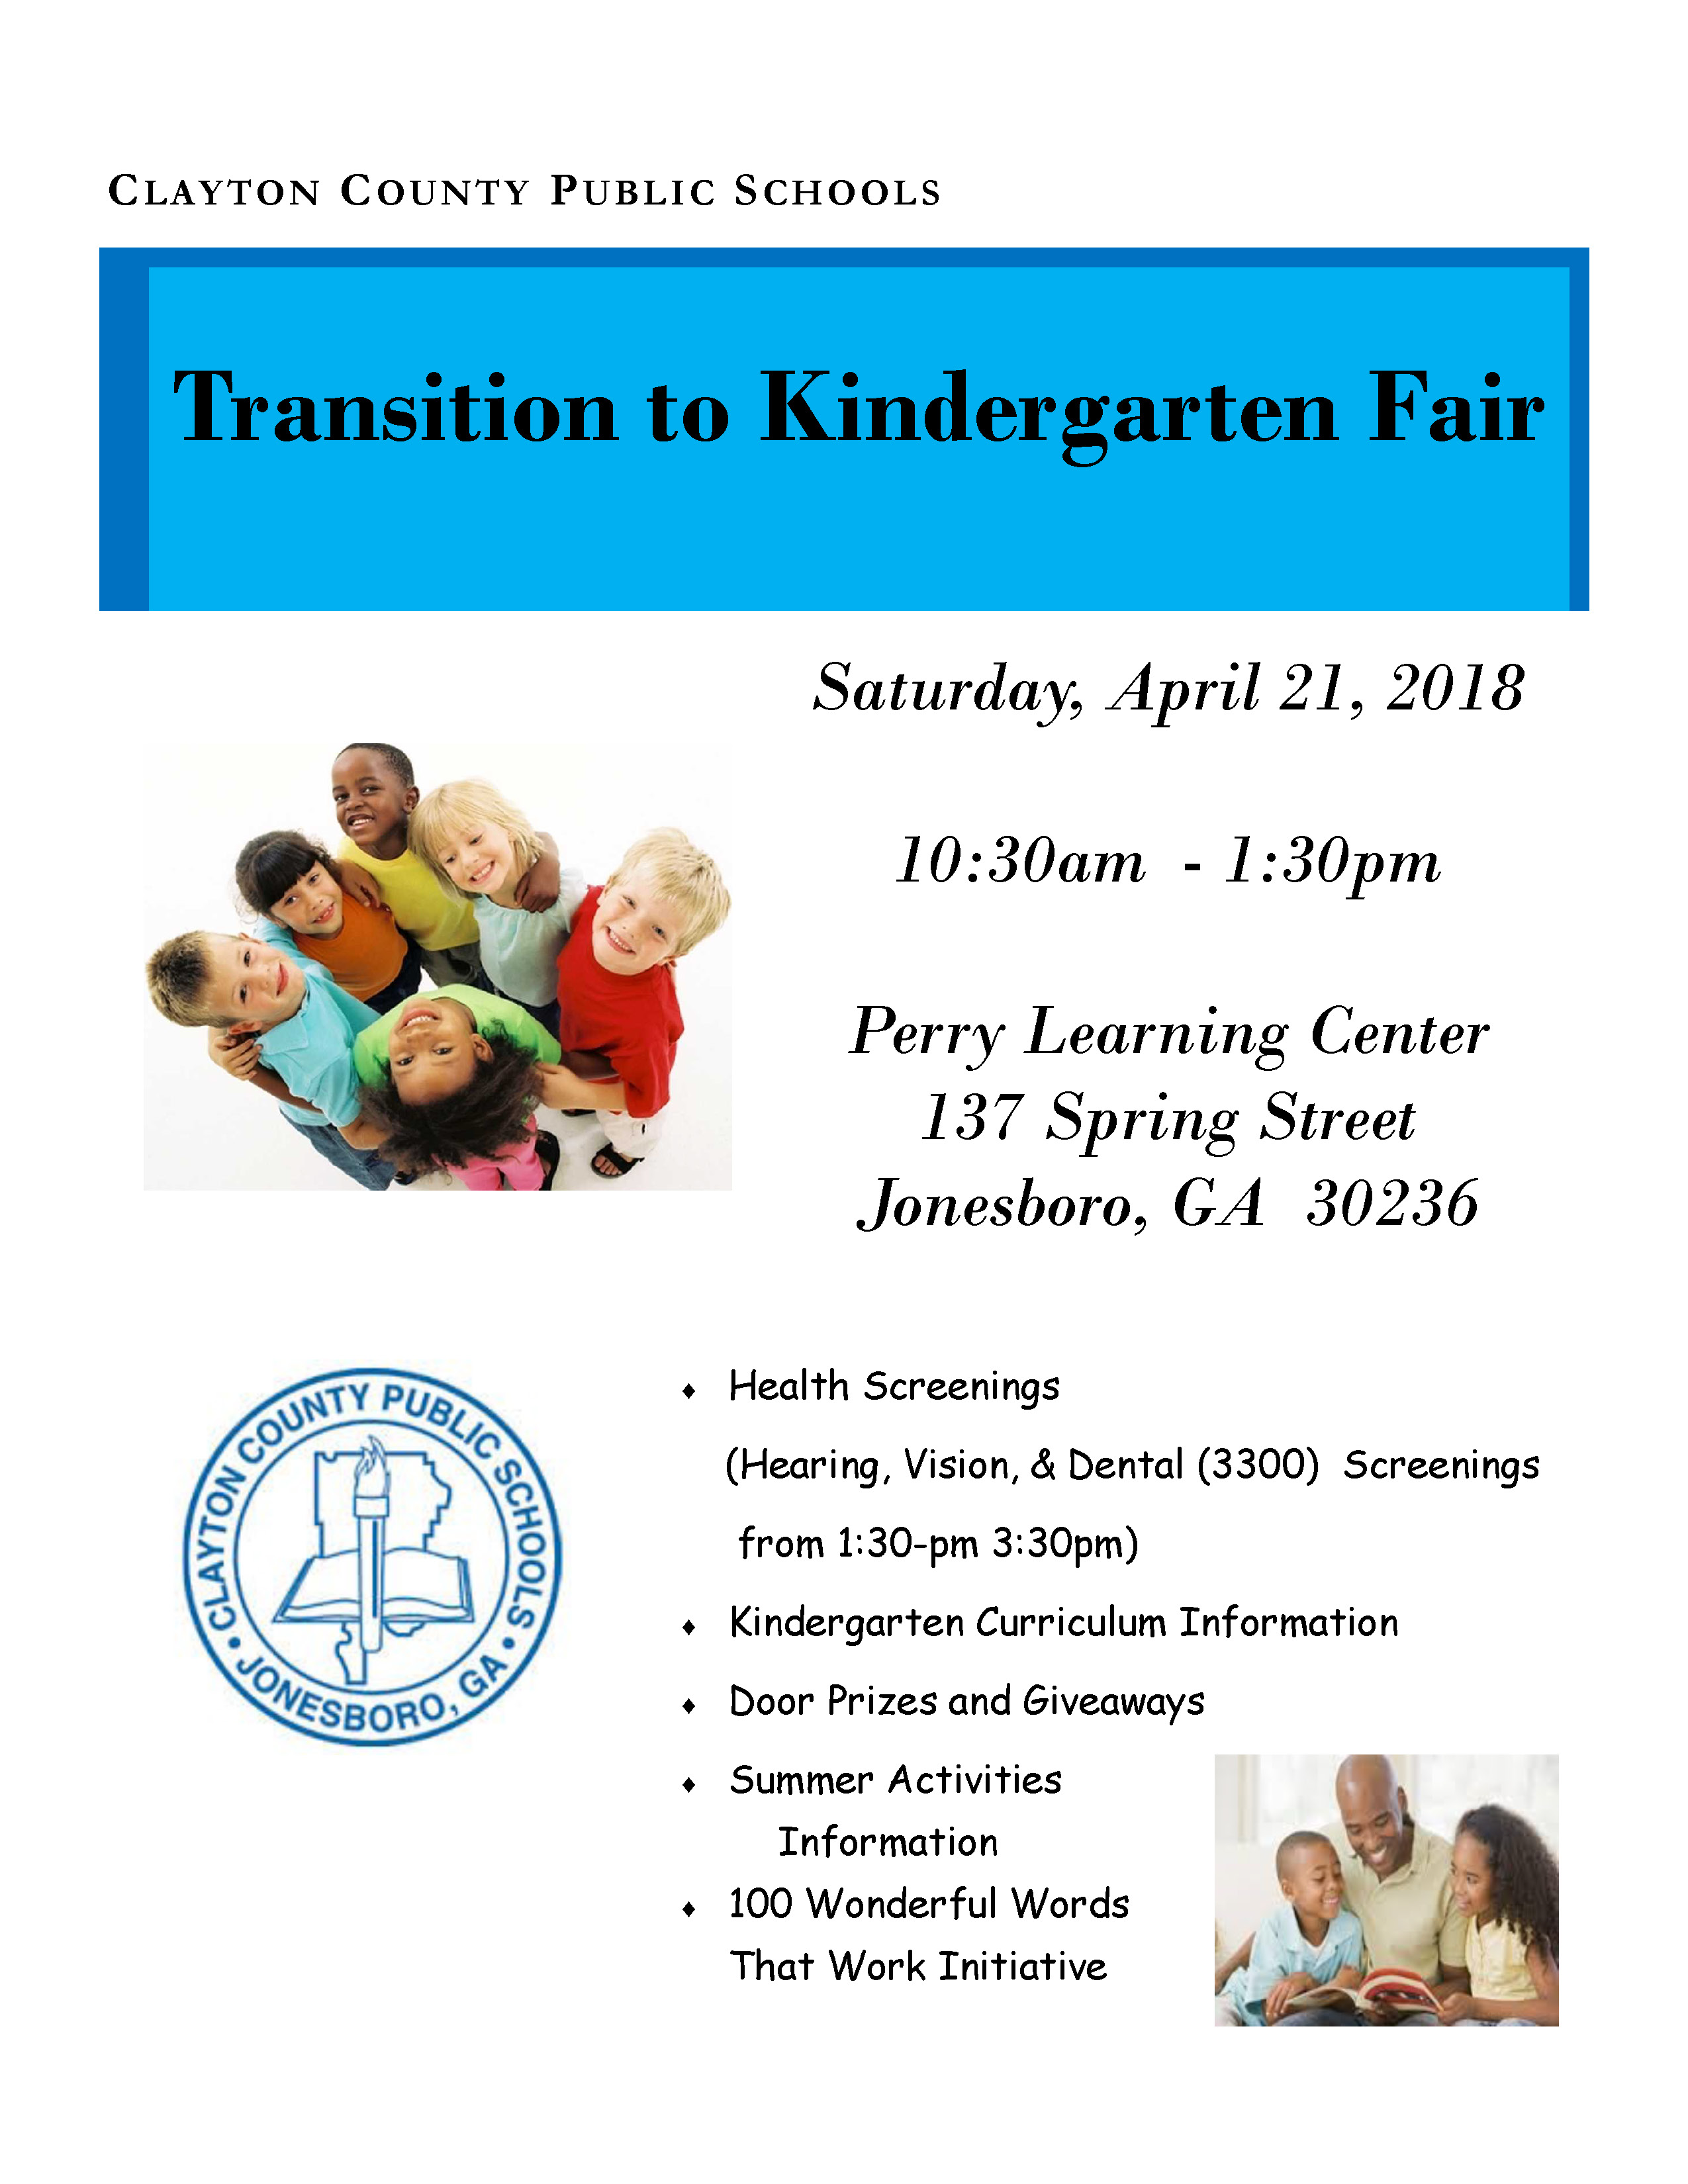 Ccps Pre K Department To Host Transition Fair On Saturday April 21